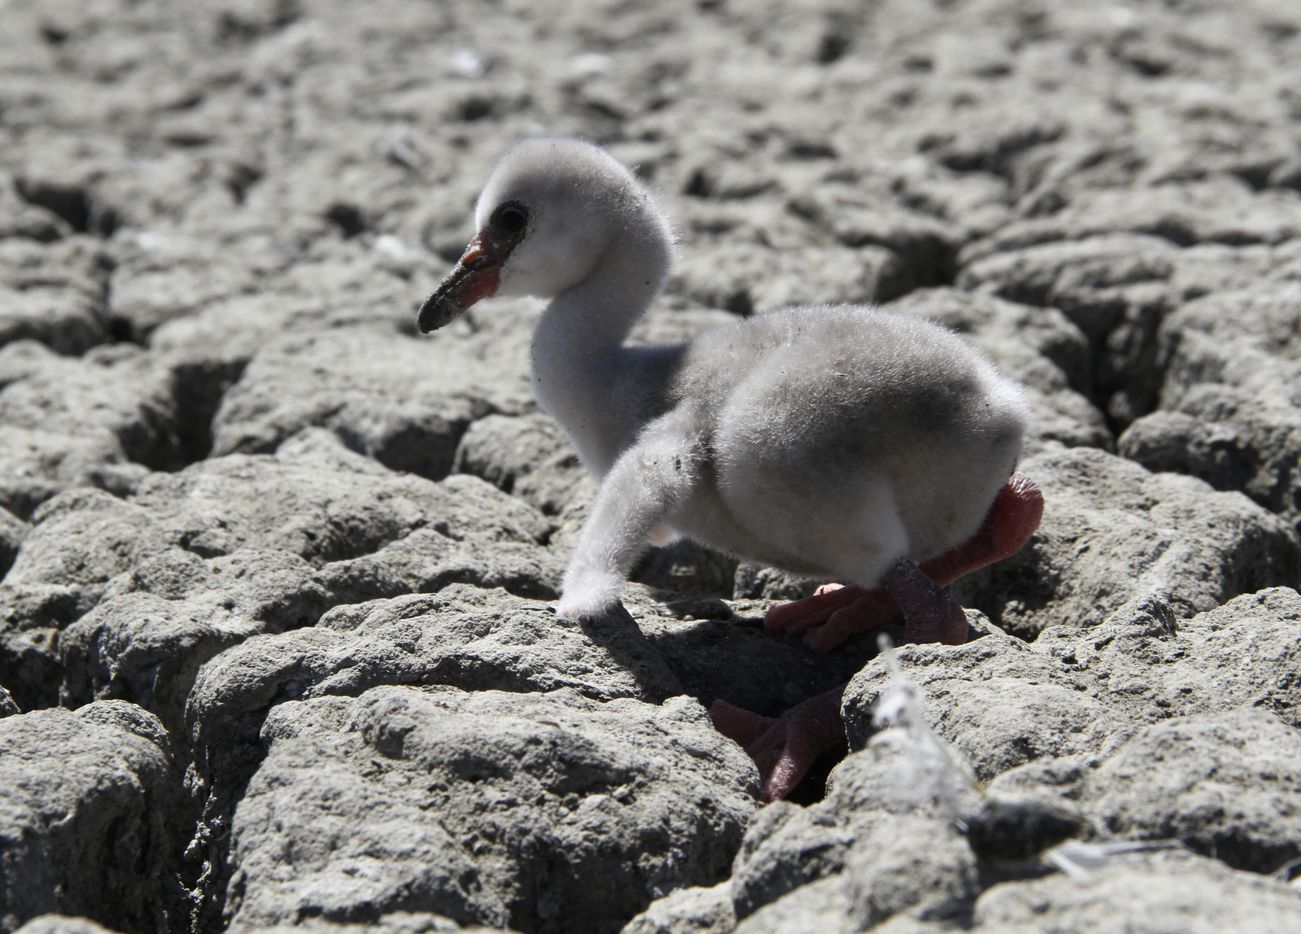 In this photo taken on Sunday, Jan. 27, 2019, a newly born flamingo chick struggles to walk on a dried out dam in Kimberley, South Africa. A special airlift for thousands of baby flamingos is underway in South Africa as drought has put their breeding  ground in peril.